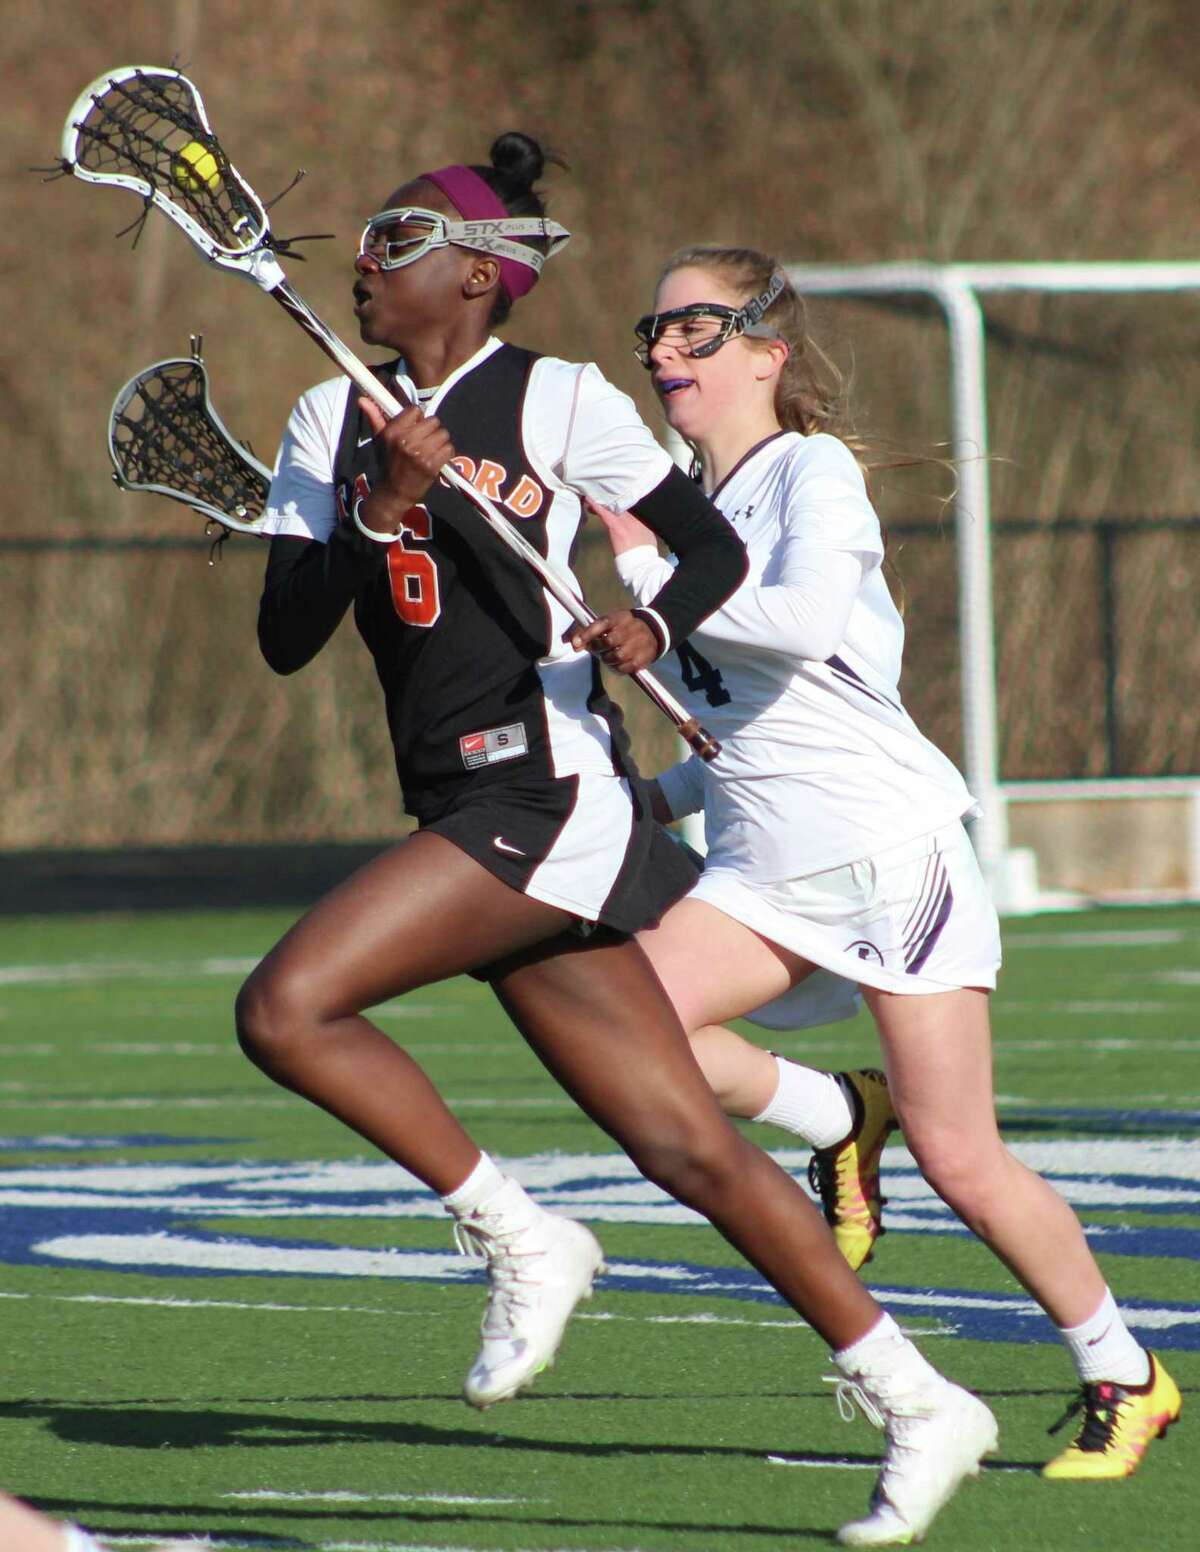 Stamford's Tamia James, left, races upfield with the ball as Immaculate's Molly Gleissner defends during the girls lacrosse game at Immaculate High School in Danbury April 4, 2018.